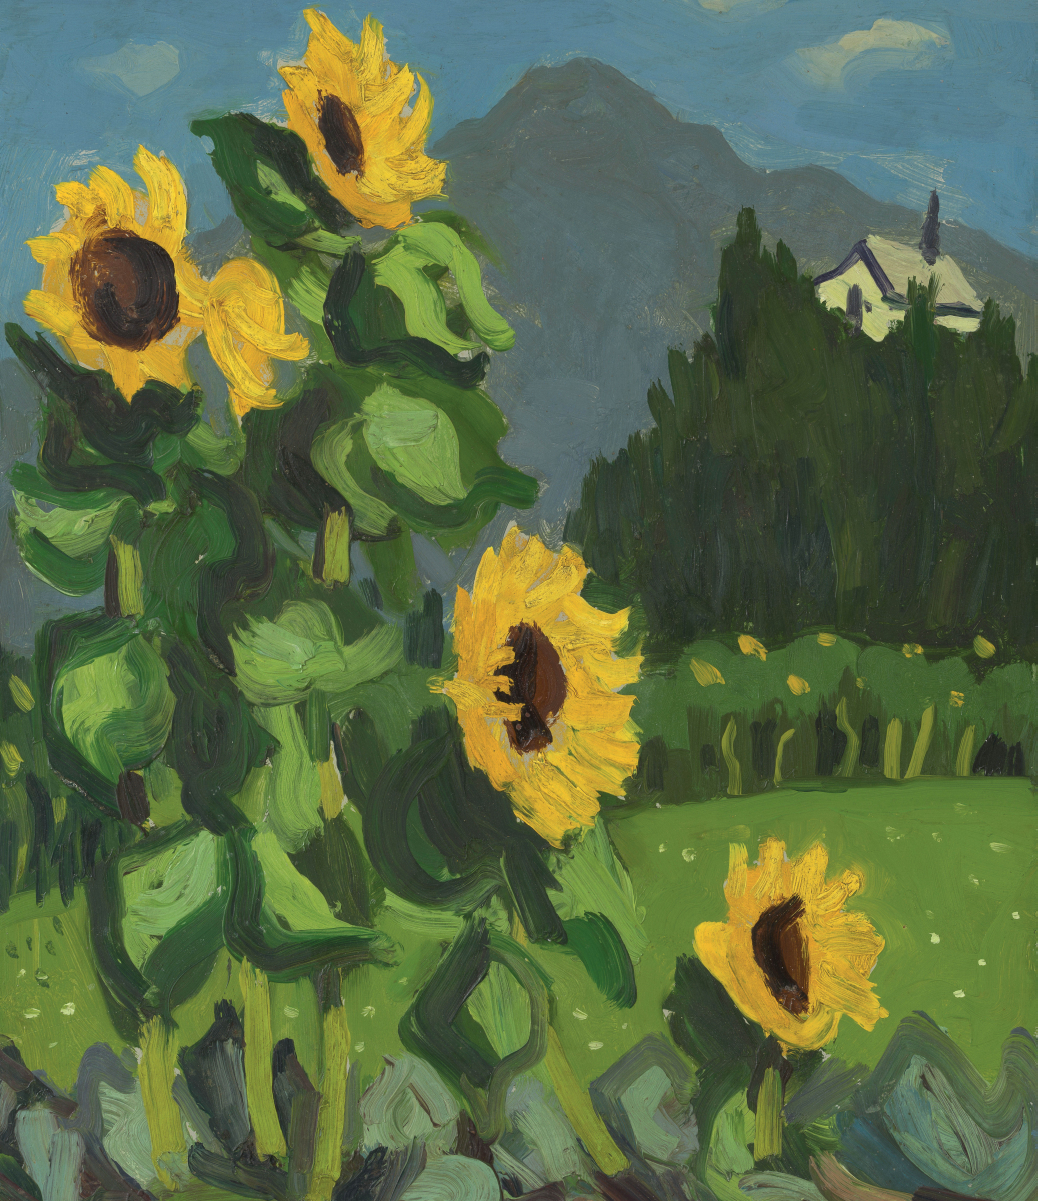 A mountain scene with Sunflowers by artist Kyffin Williams